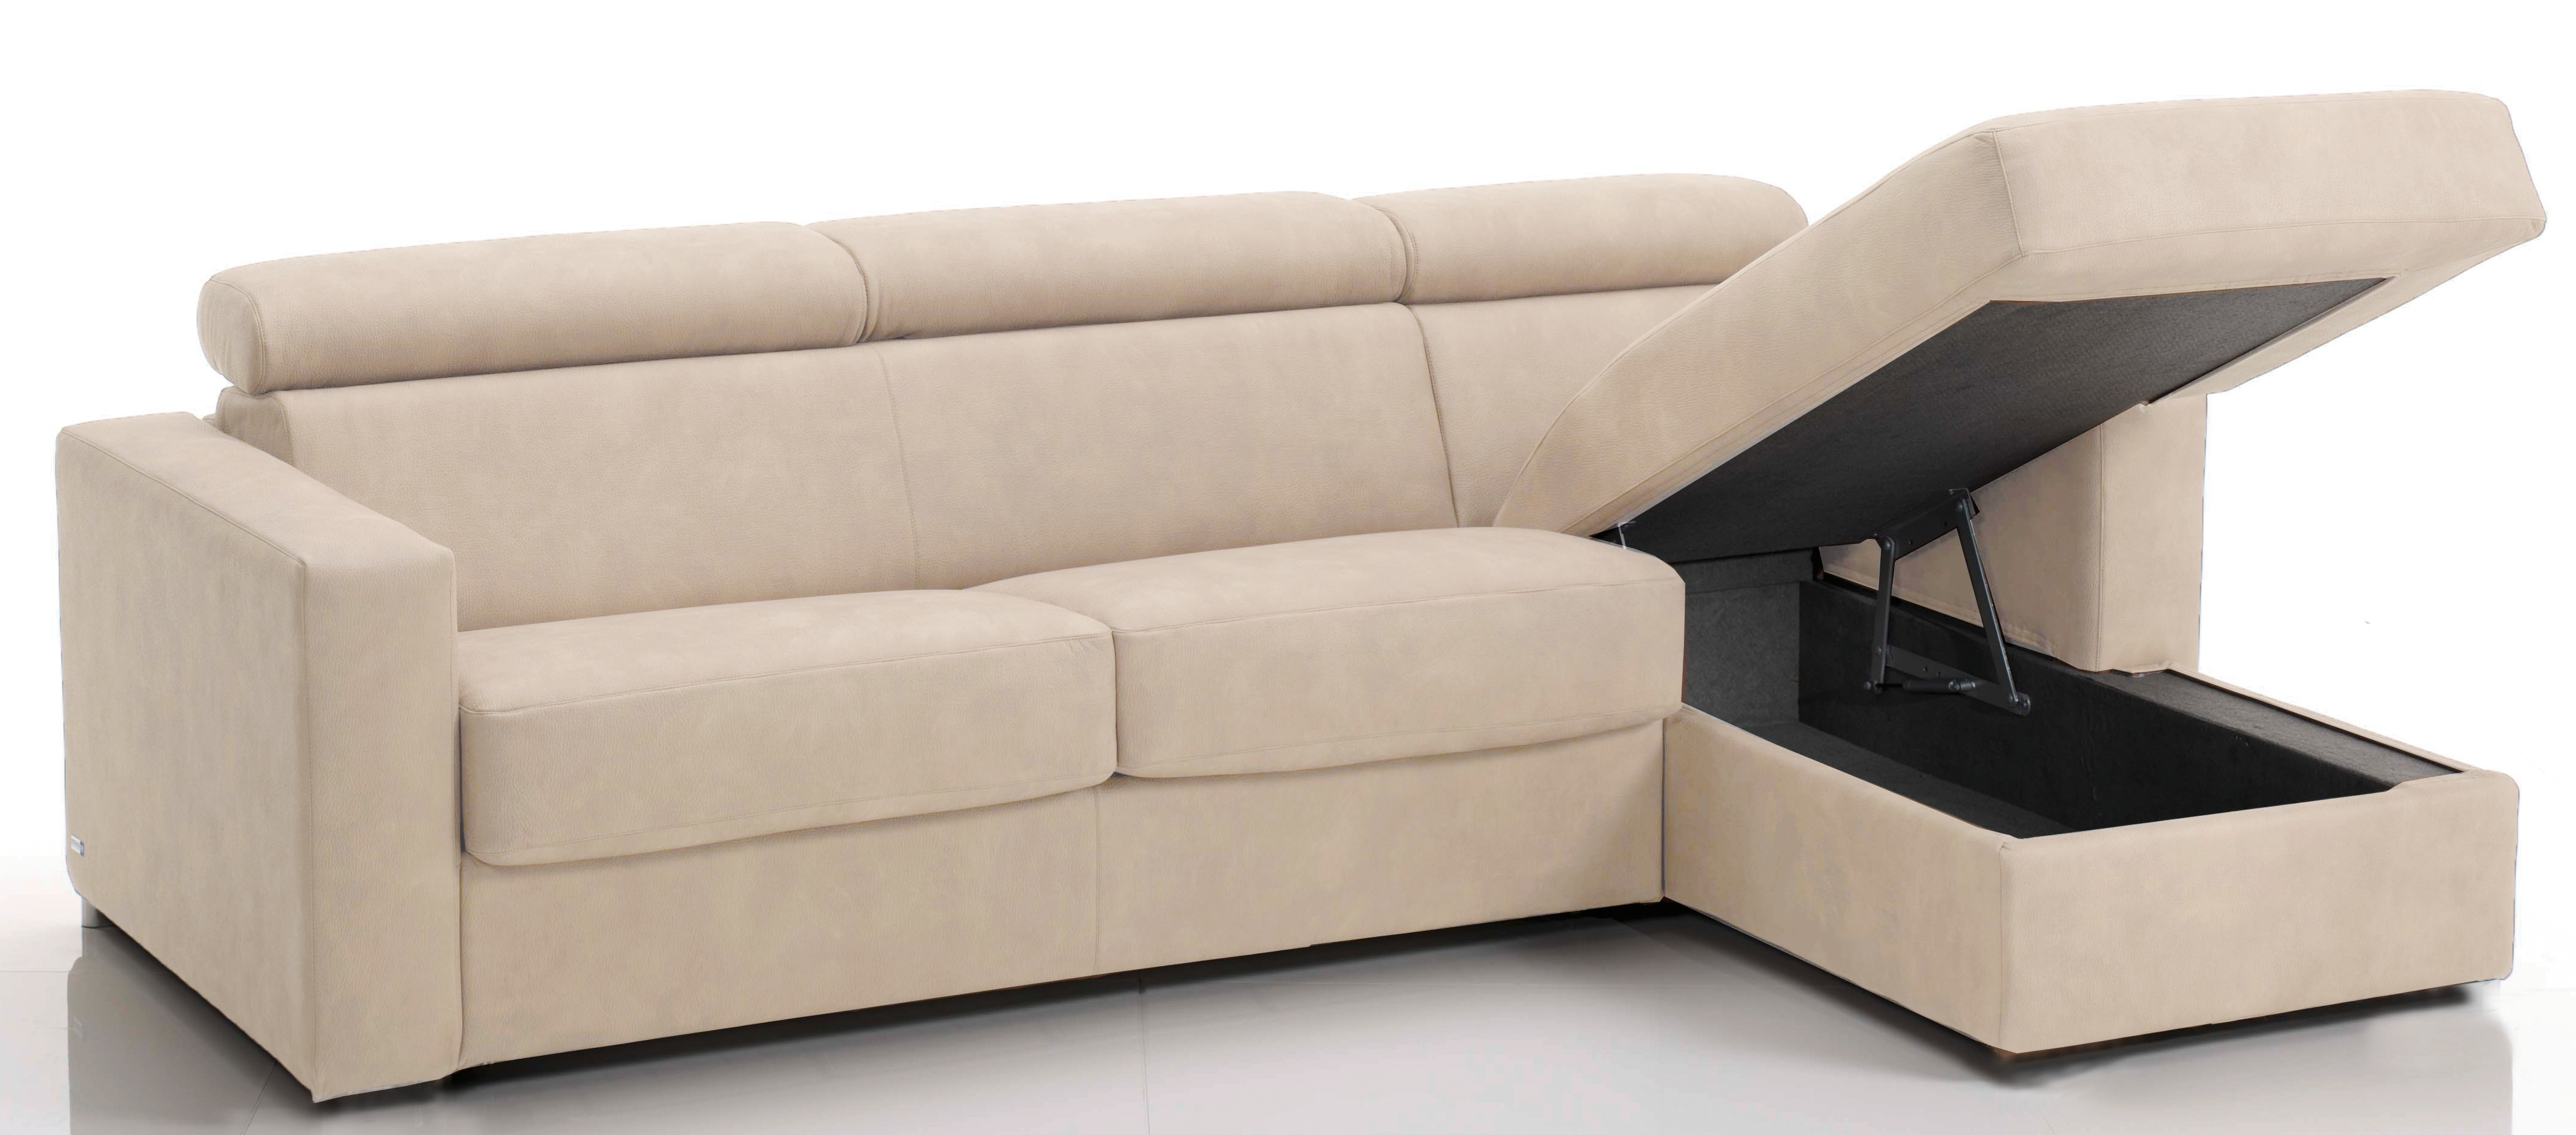 Canap convertible beige royal sofa id e de canap et for Meuble de canape